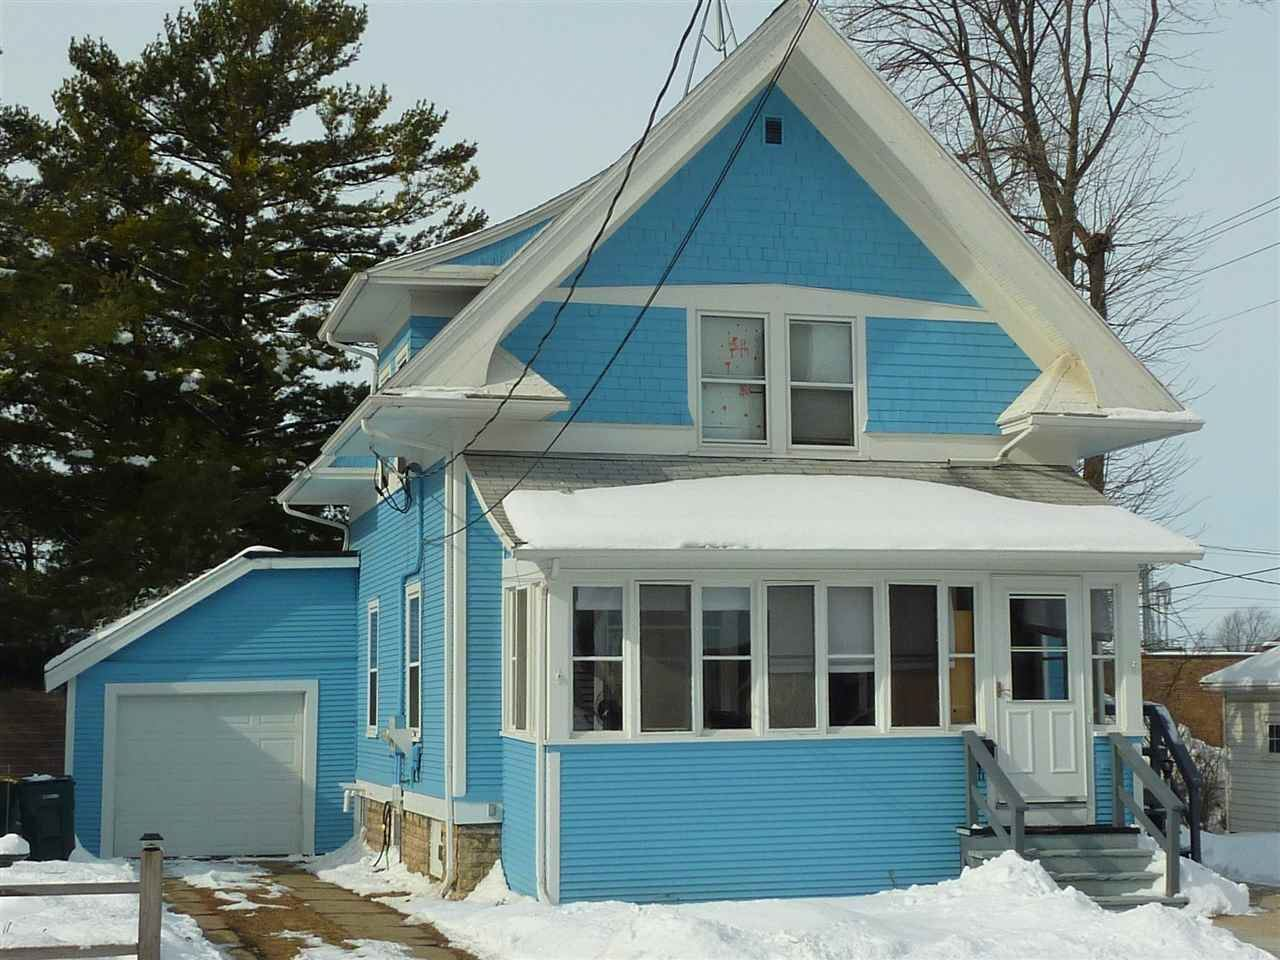 18 S Forest St, Waupun, WI 53963-2013 - MLS#: 1876807